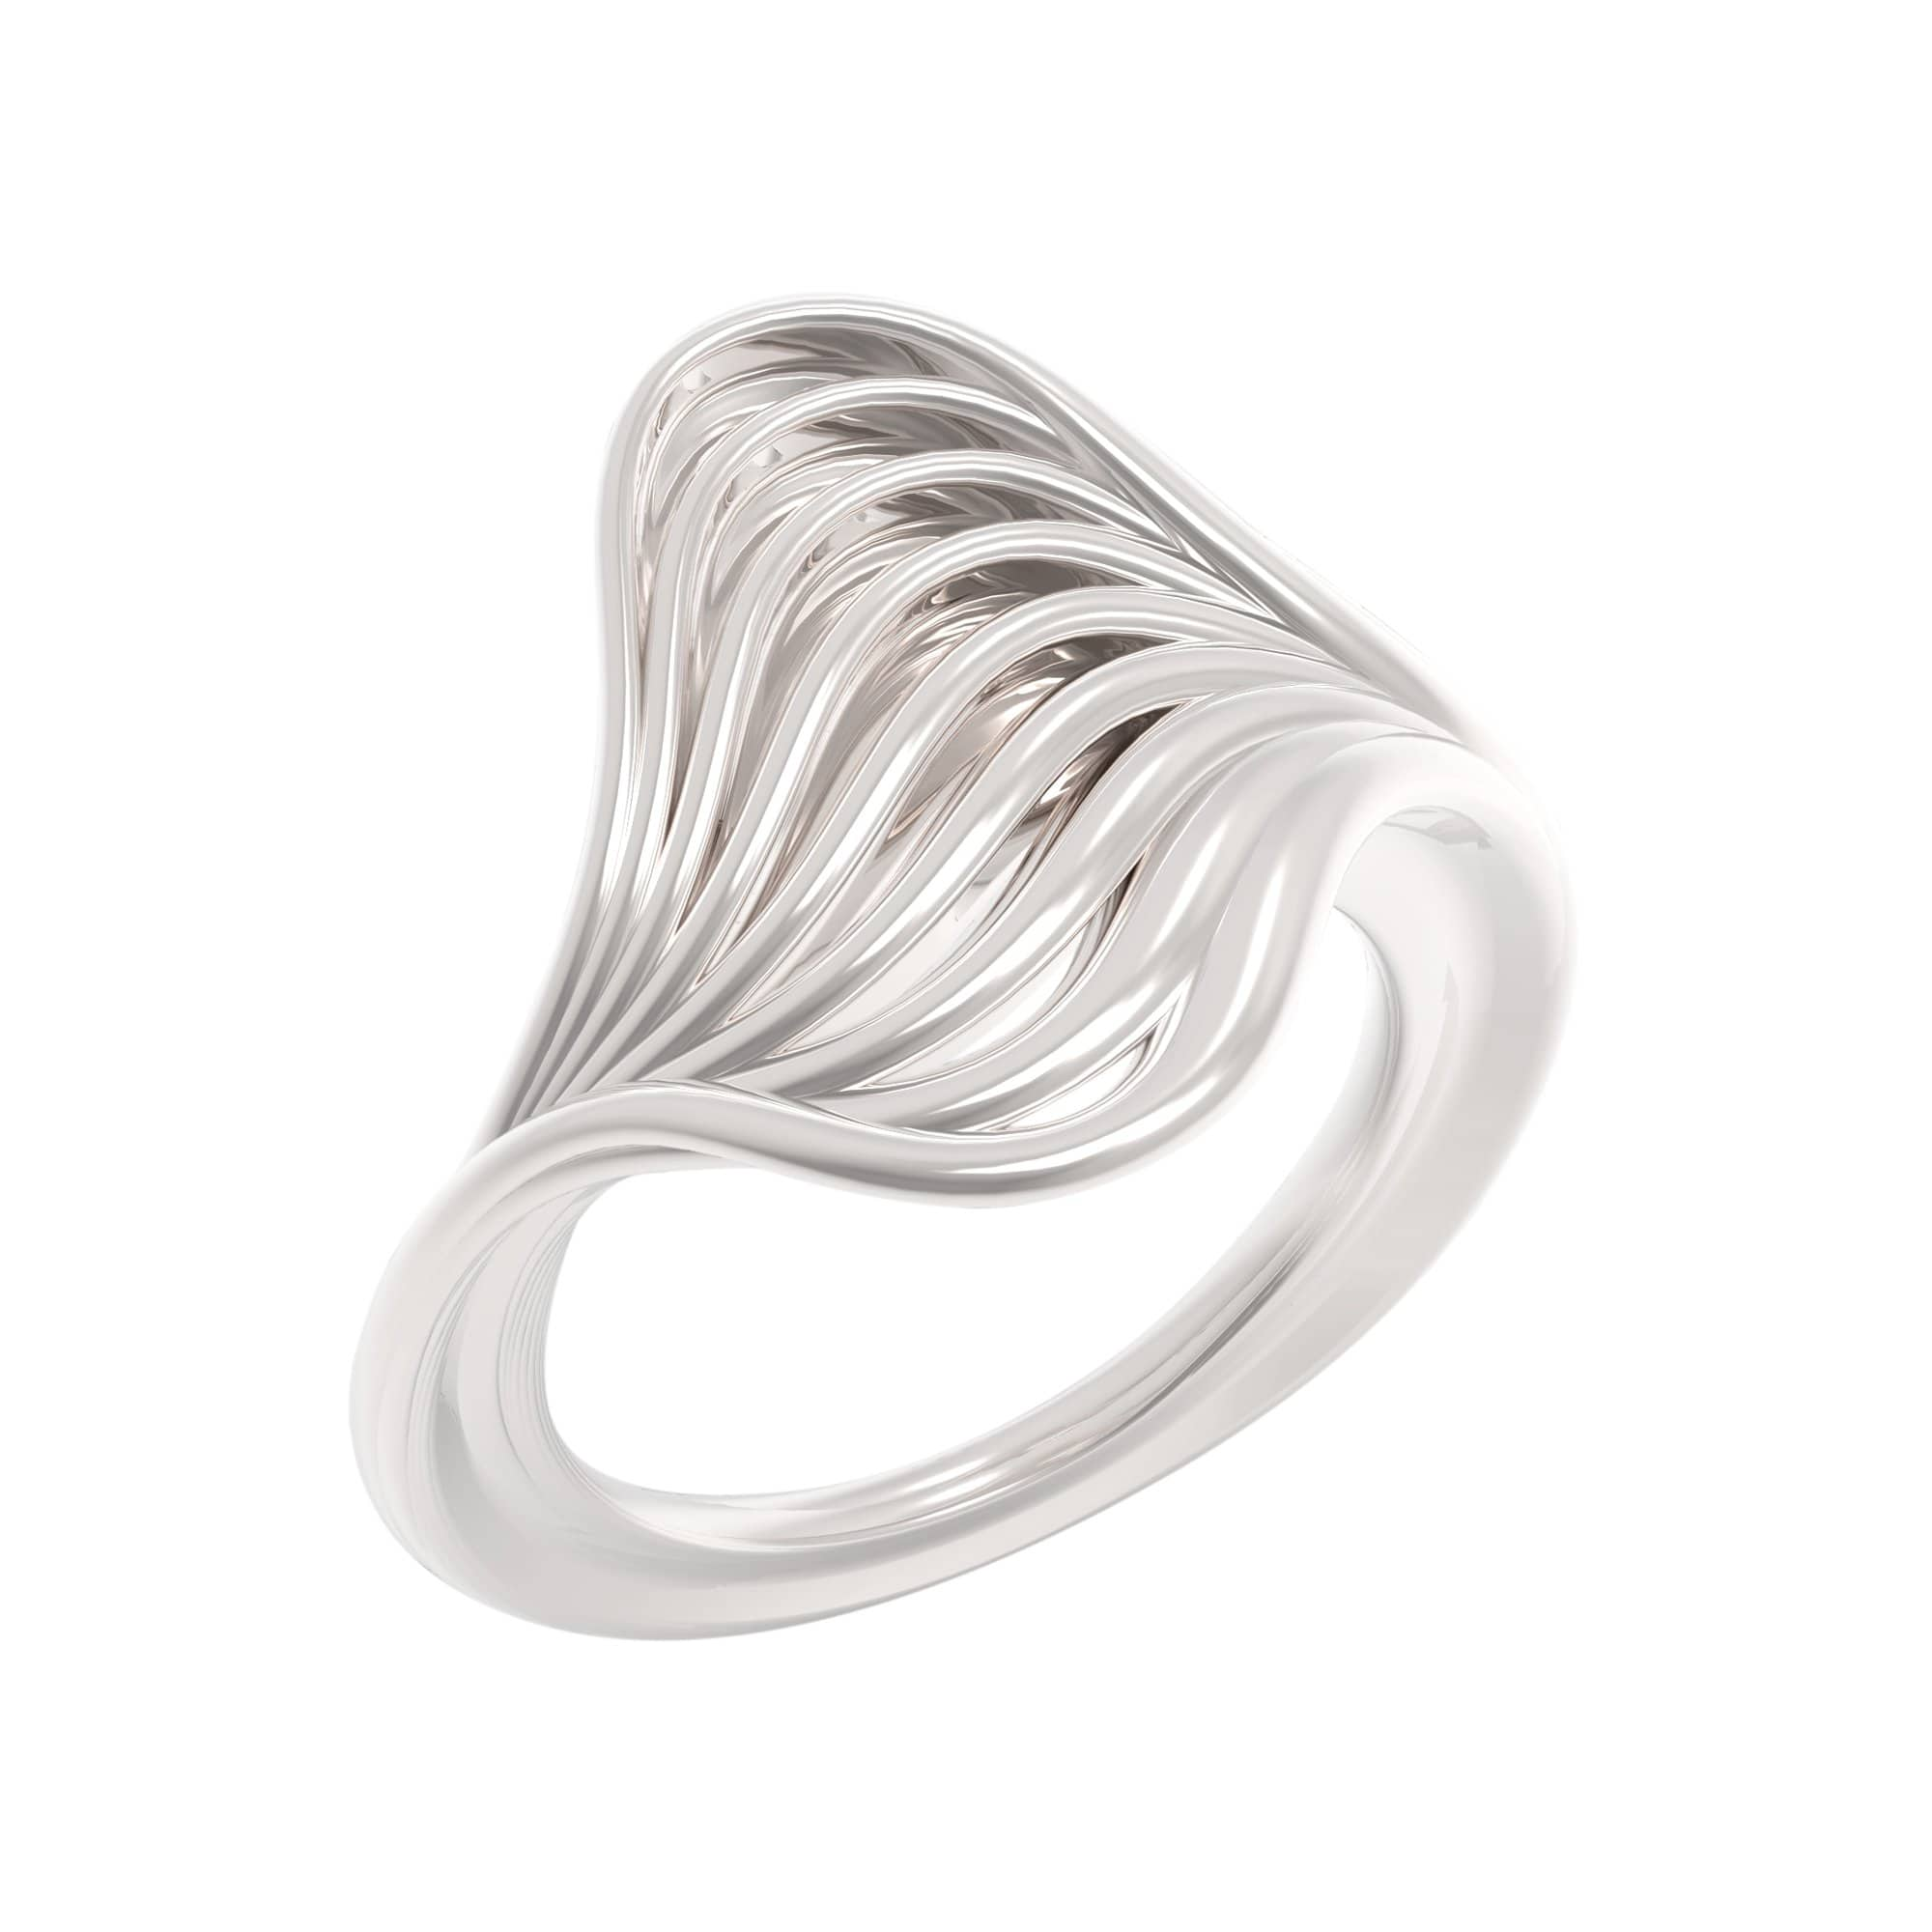 DDNKA Studio Rings 4.5 / Silver Russe Ring